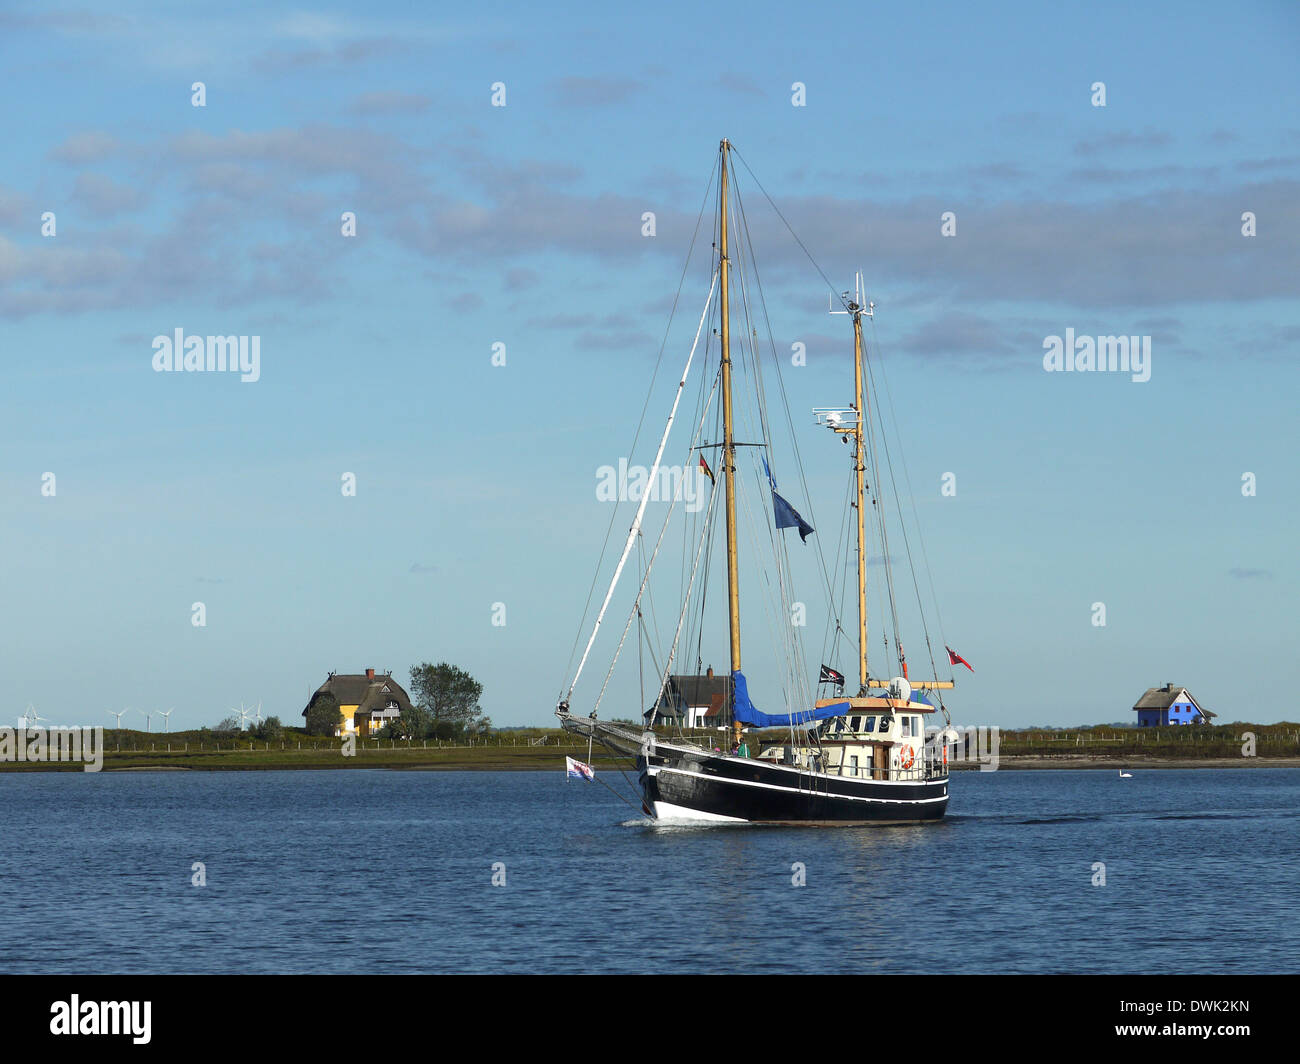 ketch in fehmarnsund, baltic sea, schleswig-holstein, germany - Stock Image